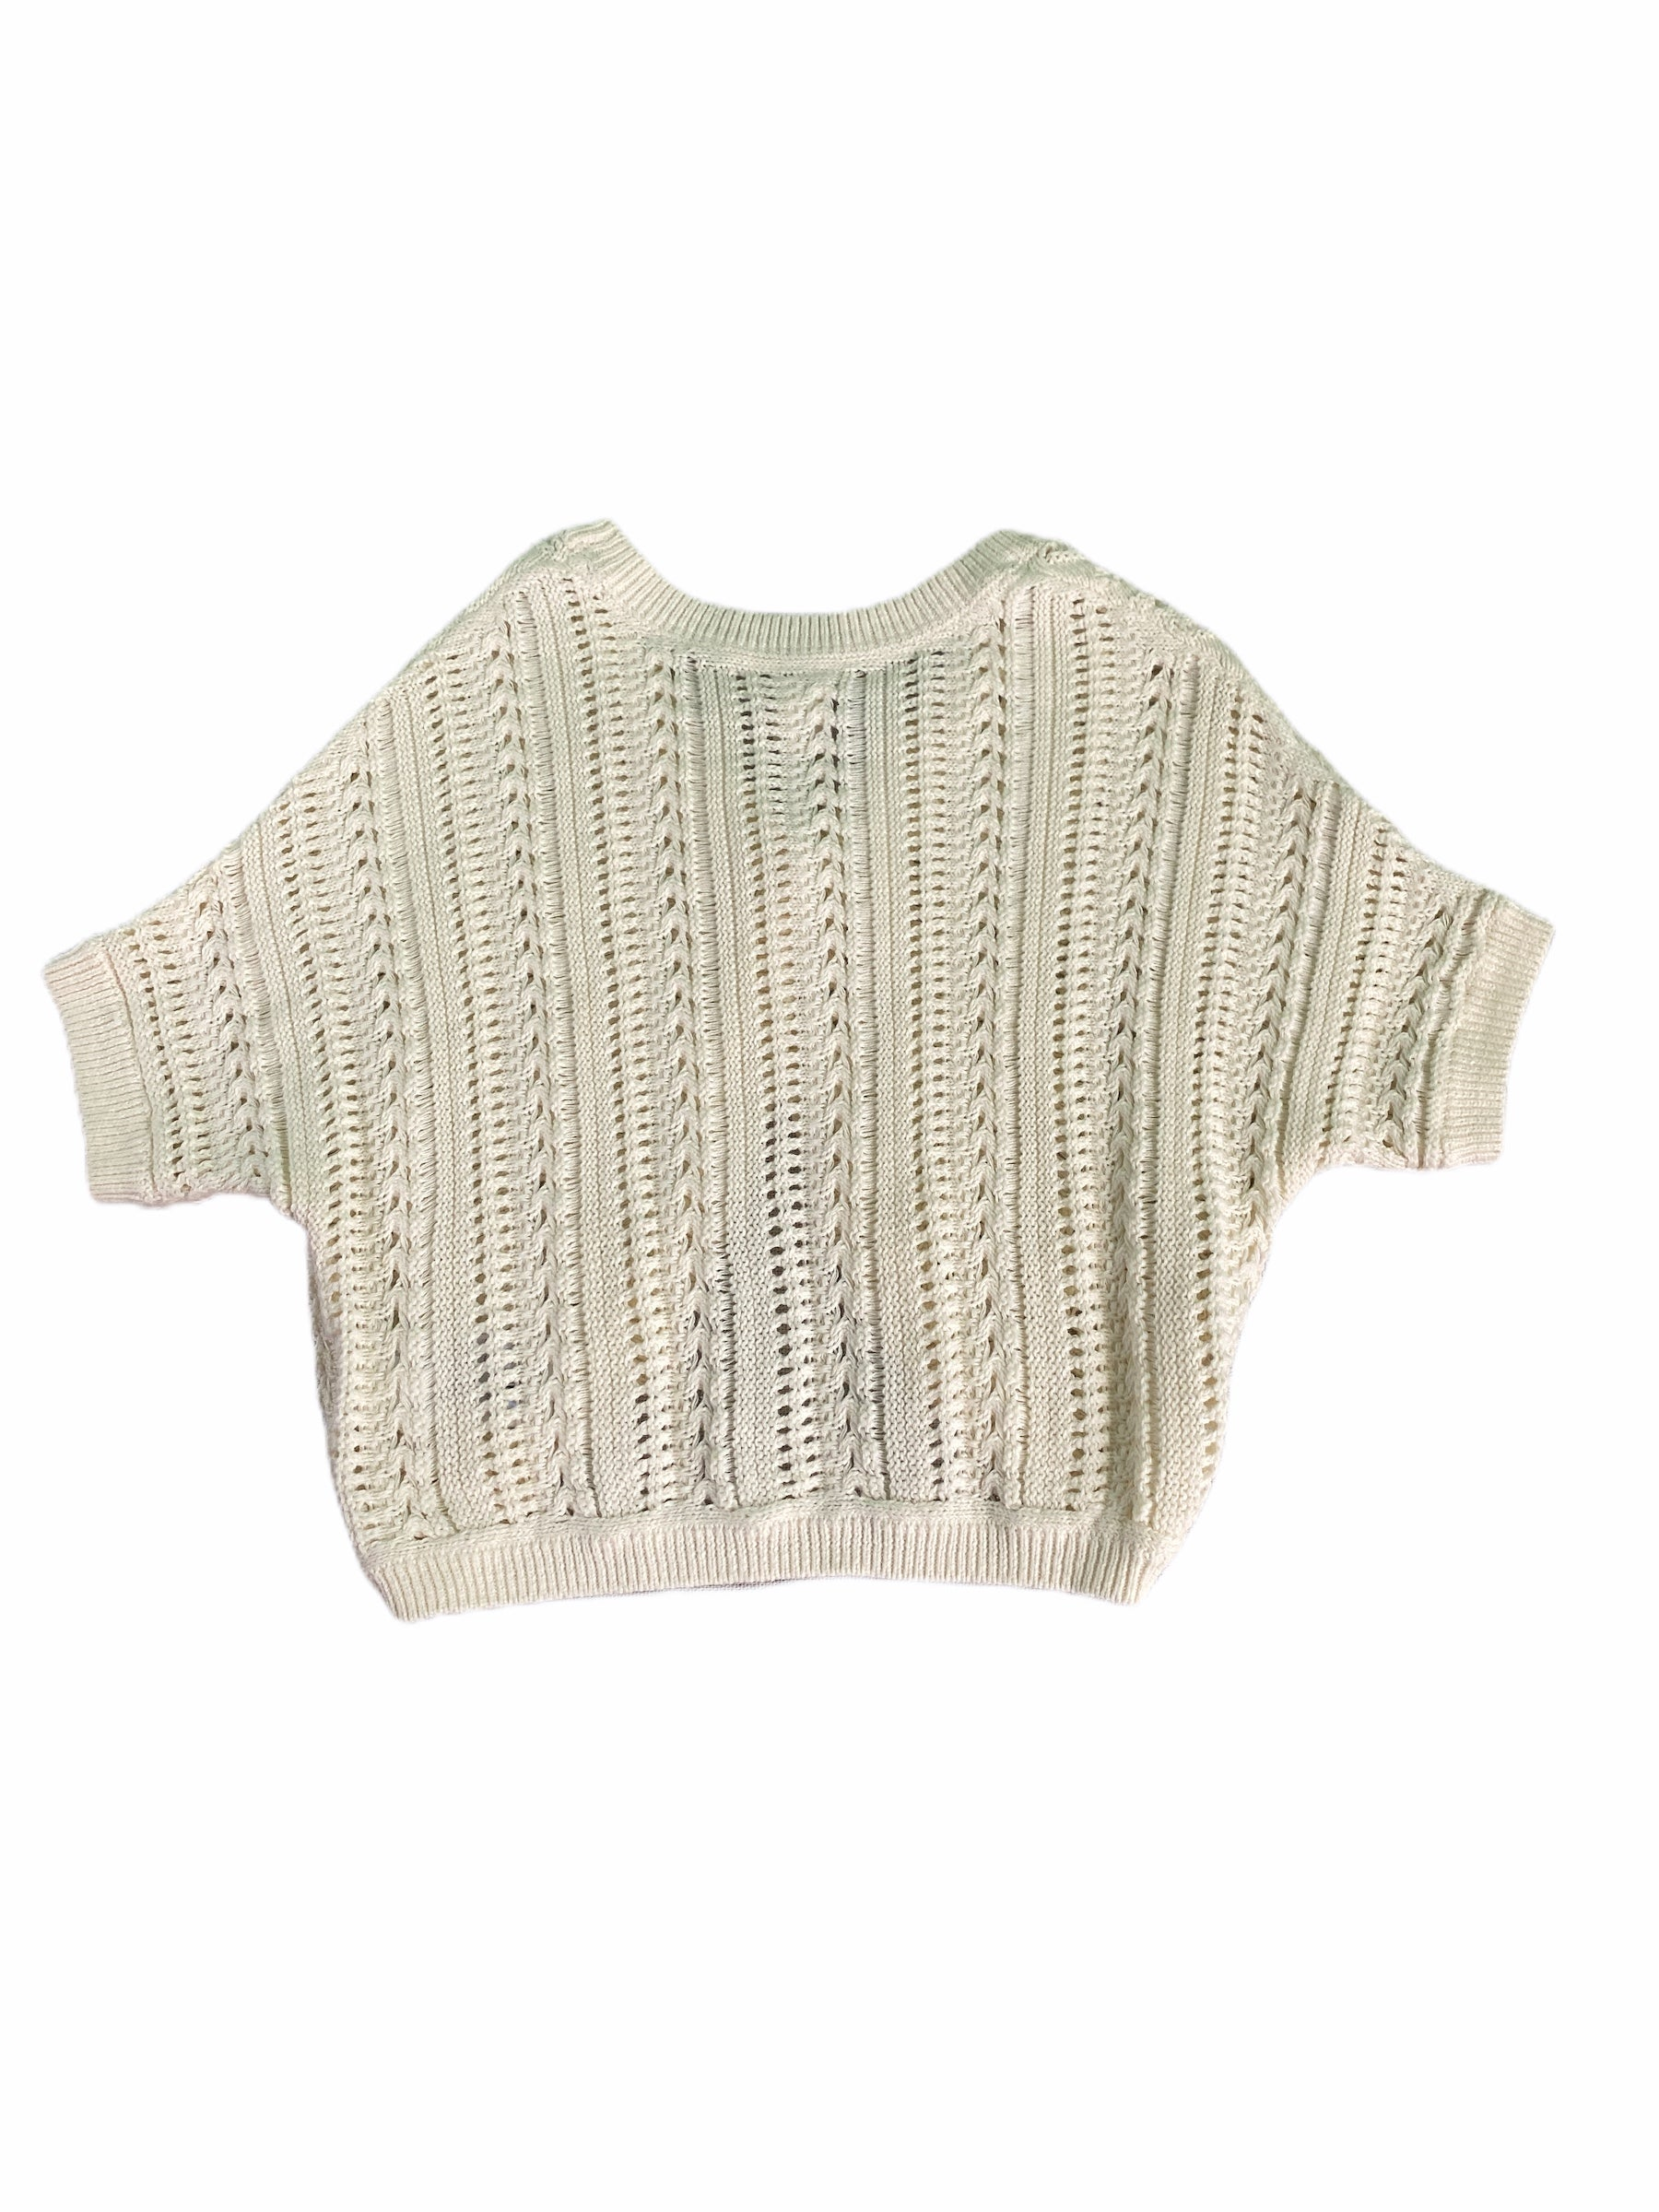 Gap Knit Shrug (4 Girls)